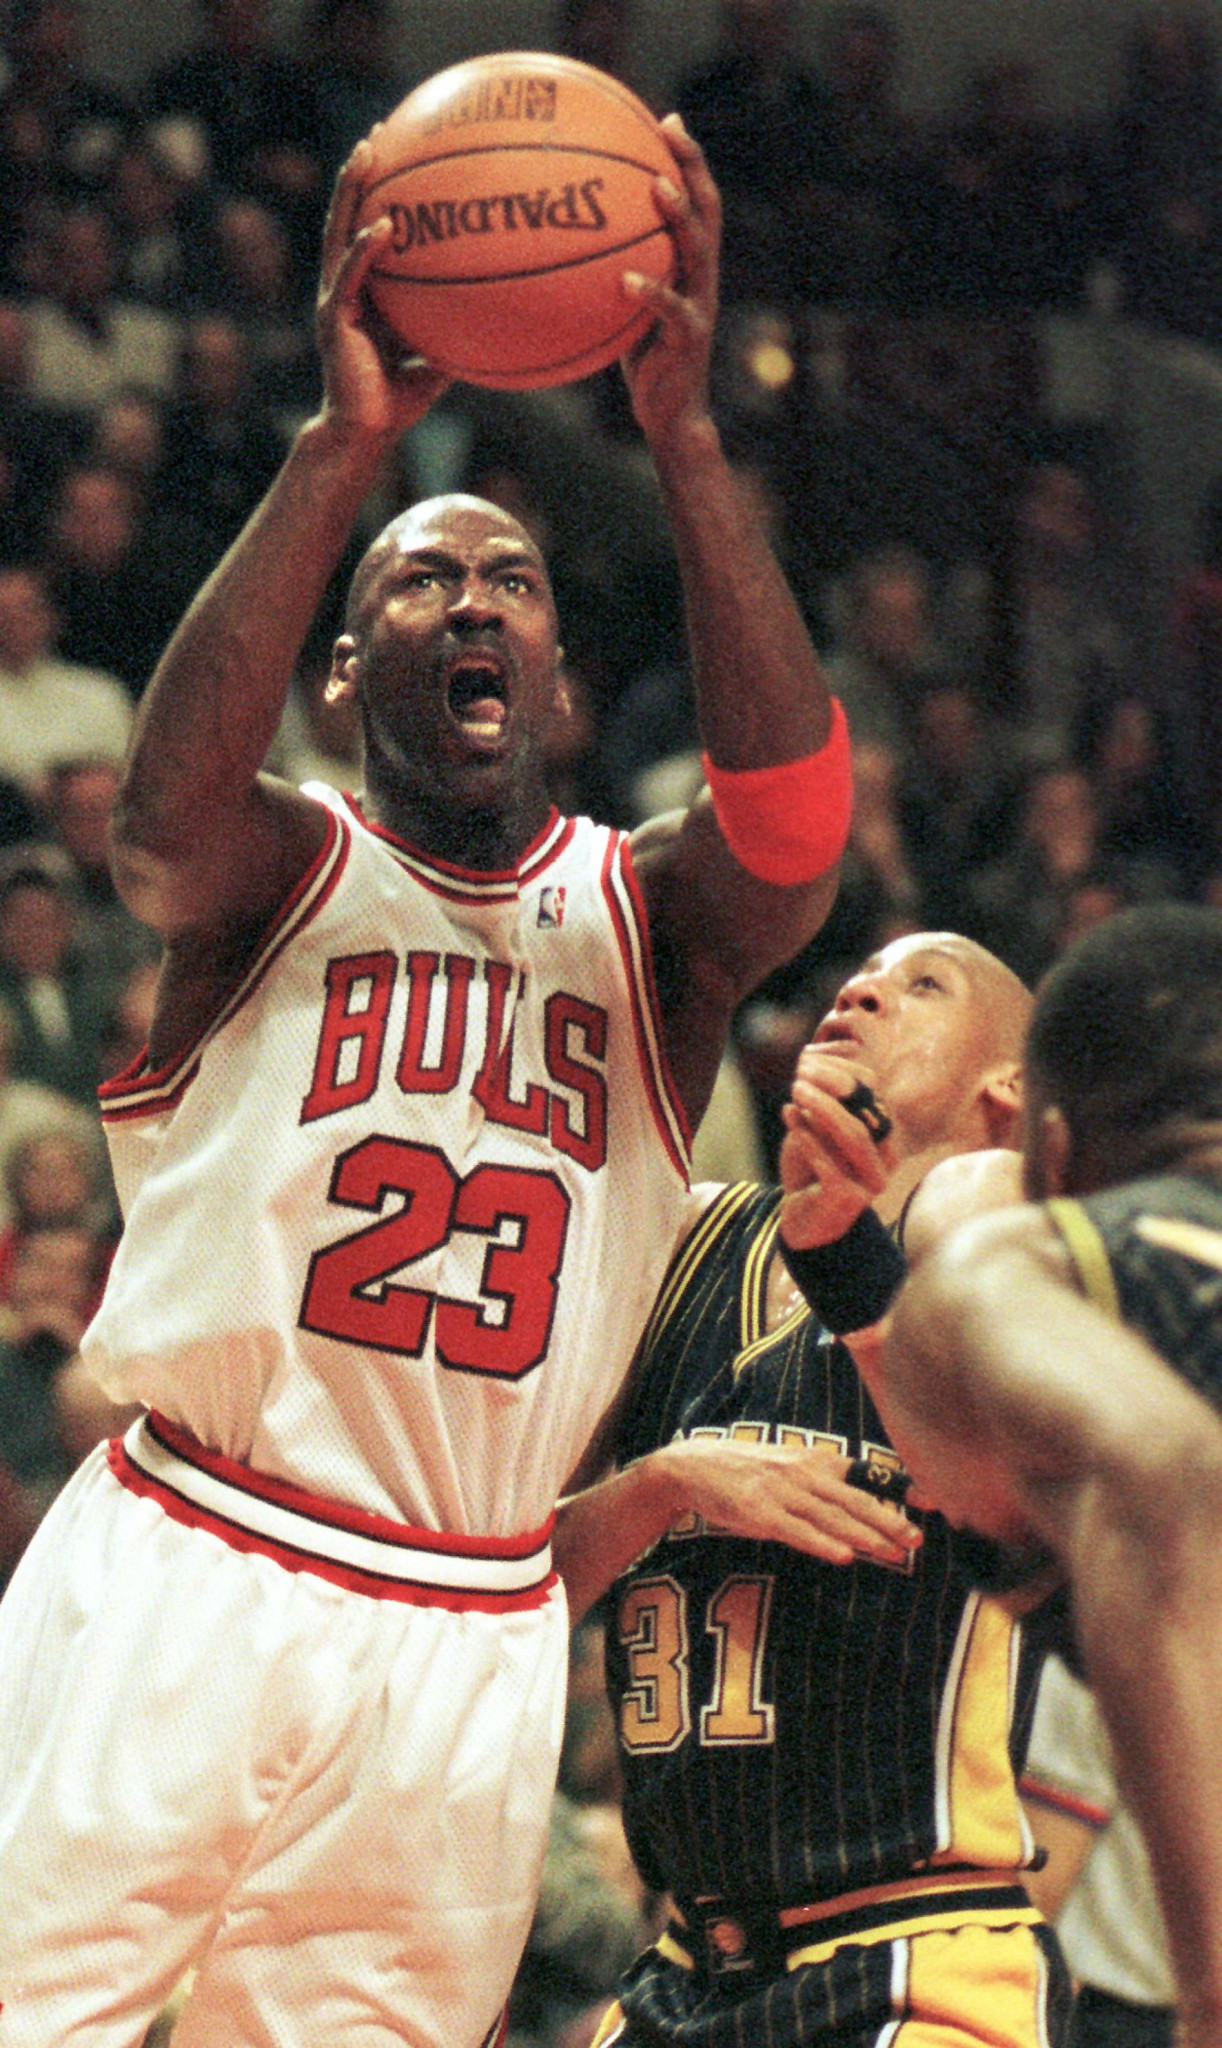 The jersey worn by Michael Jordan in the Chicago Bulls victory over  Indiana Pacers in February 1998 sold at the same auction for $230,401 ©Getty Images